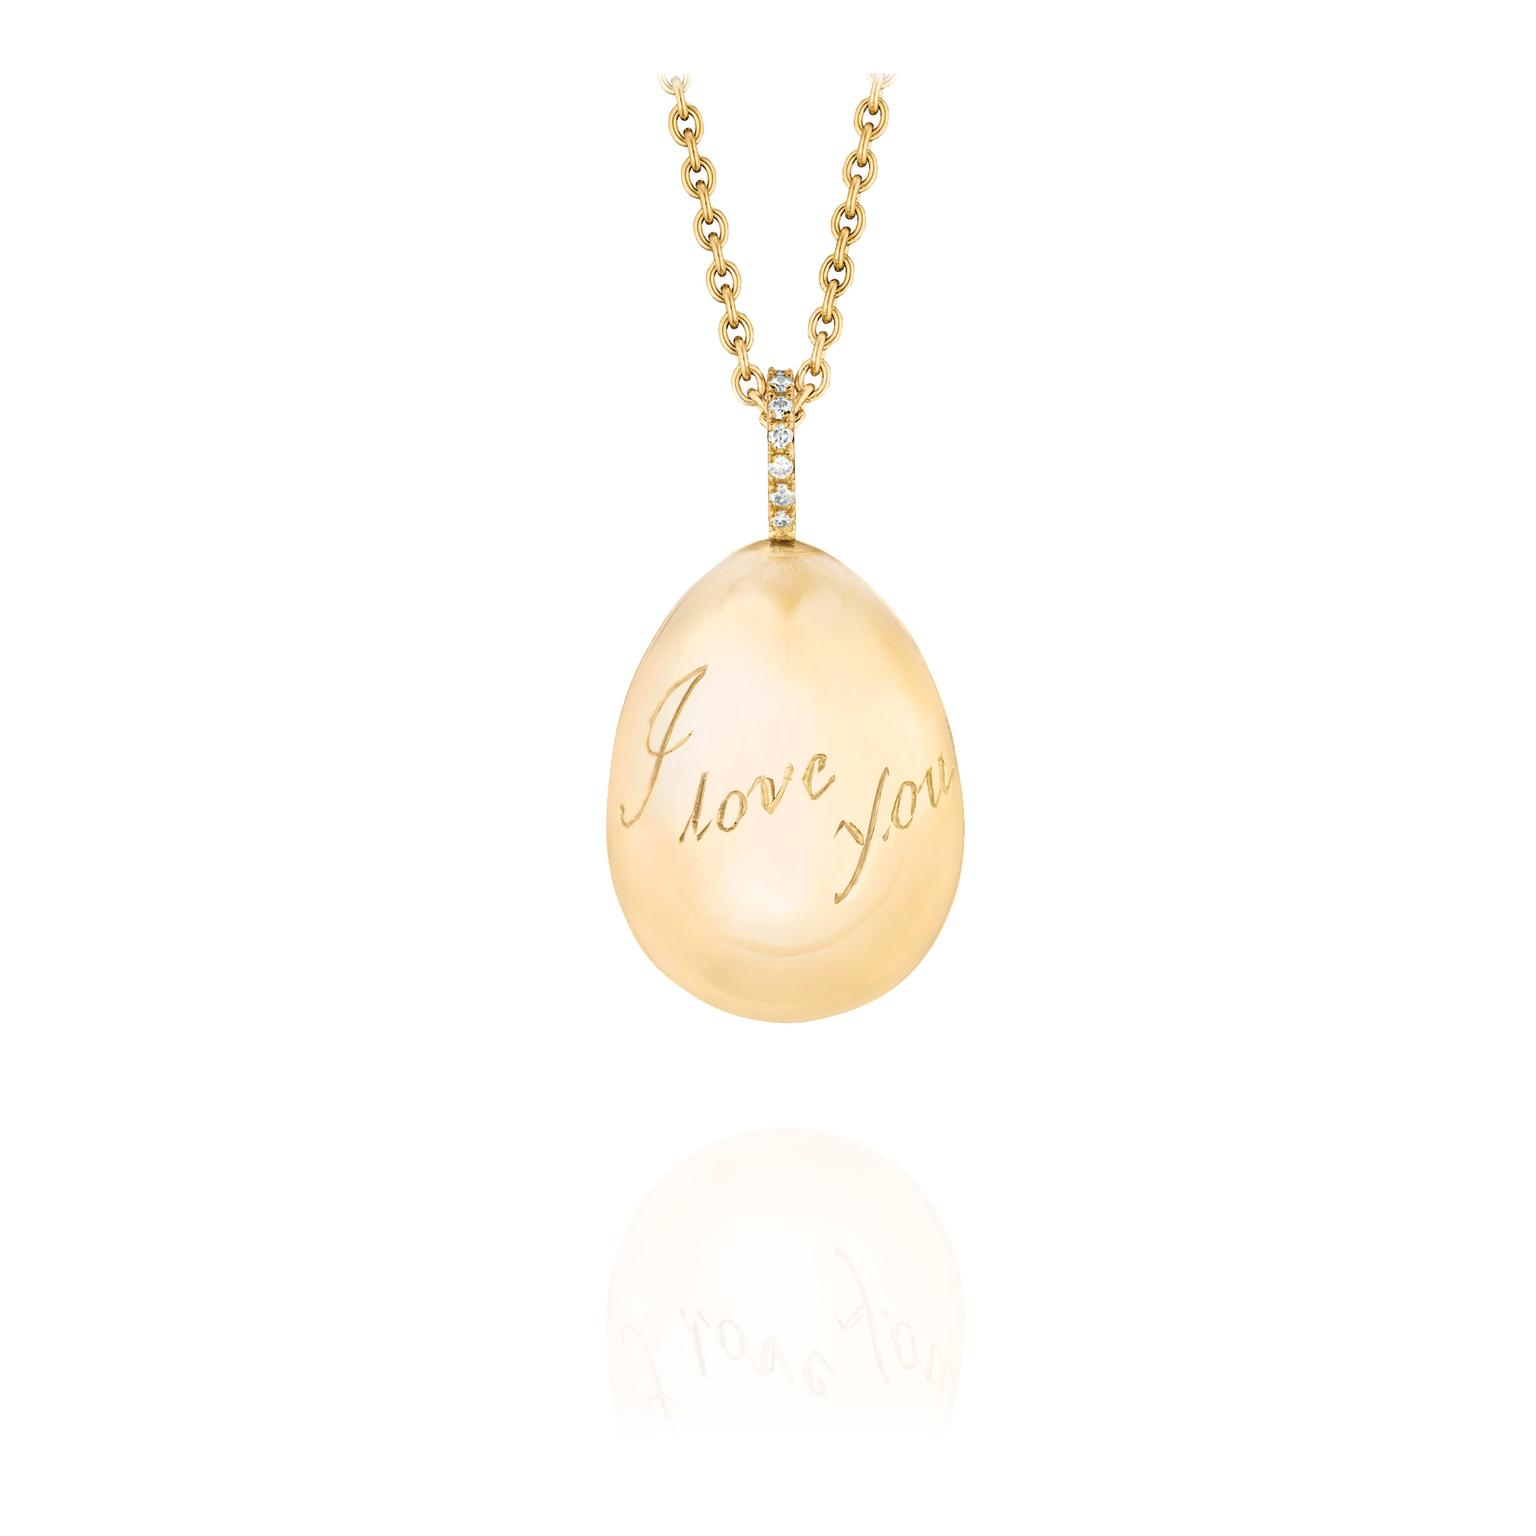 Yellow gold egg pendant with diamonds faberg the jewellery editor faberge egg pendant zoom aloadofball Choice Image